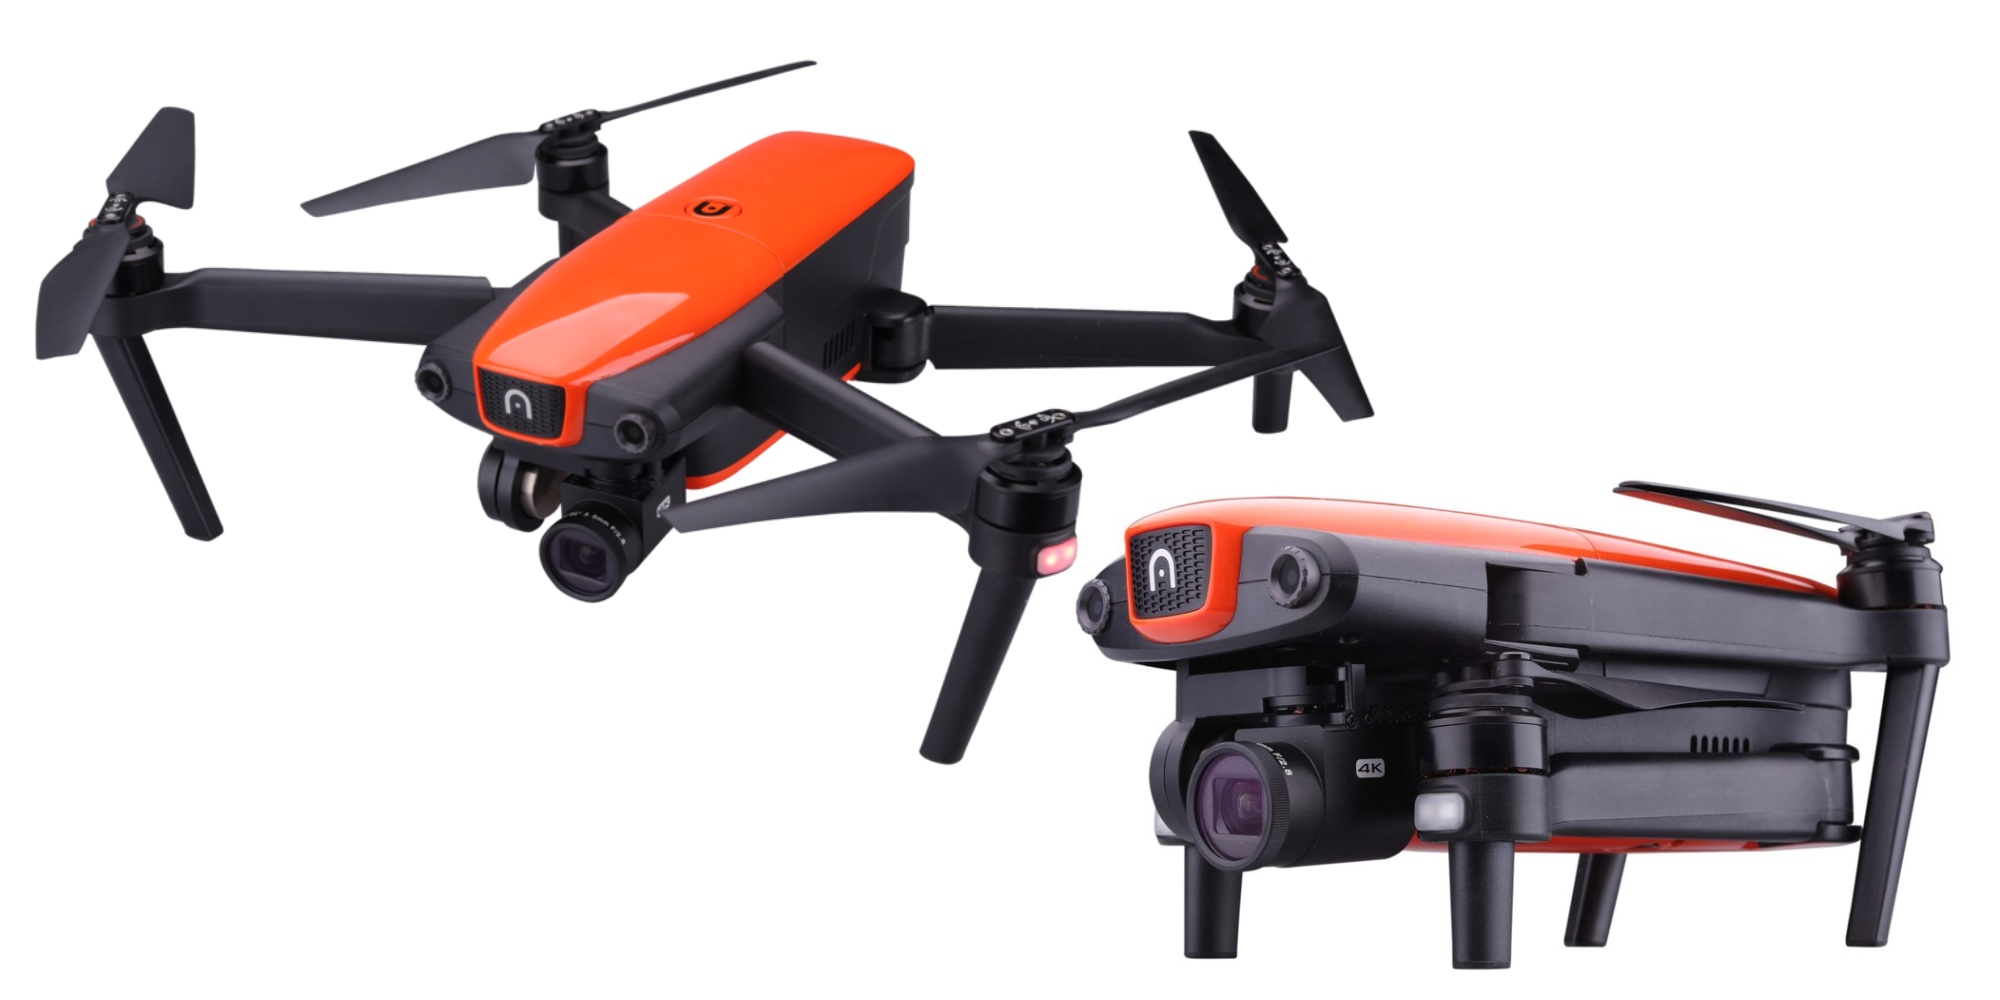 Autel Robotics' EVO Quadcopter includes an extra battery + charger at $919 shipped ($1,145 value)